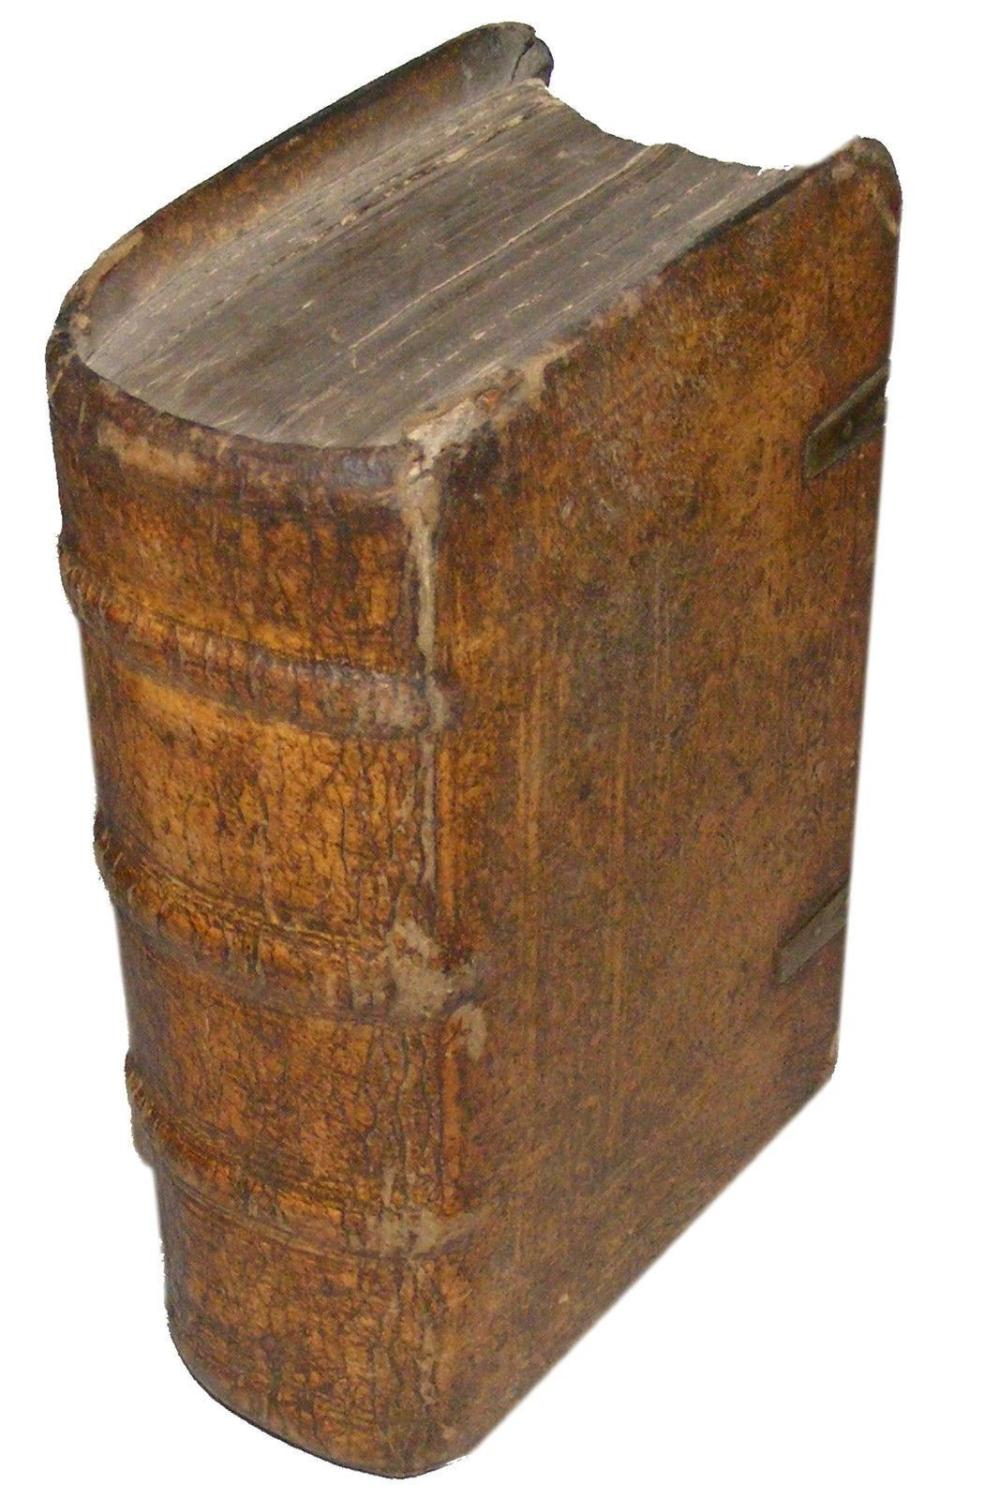 1523 Bible Latin Biblia Cum Summariorum. Tooled Vellum Boards